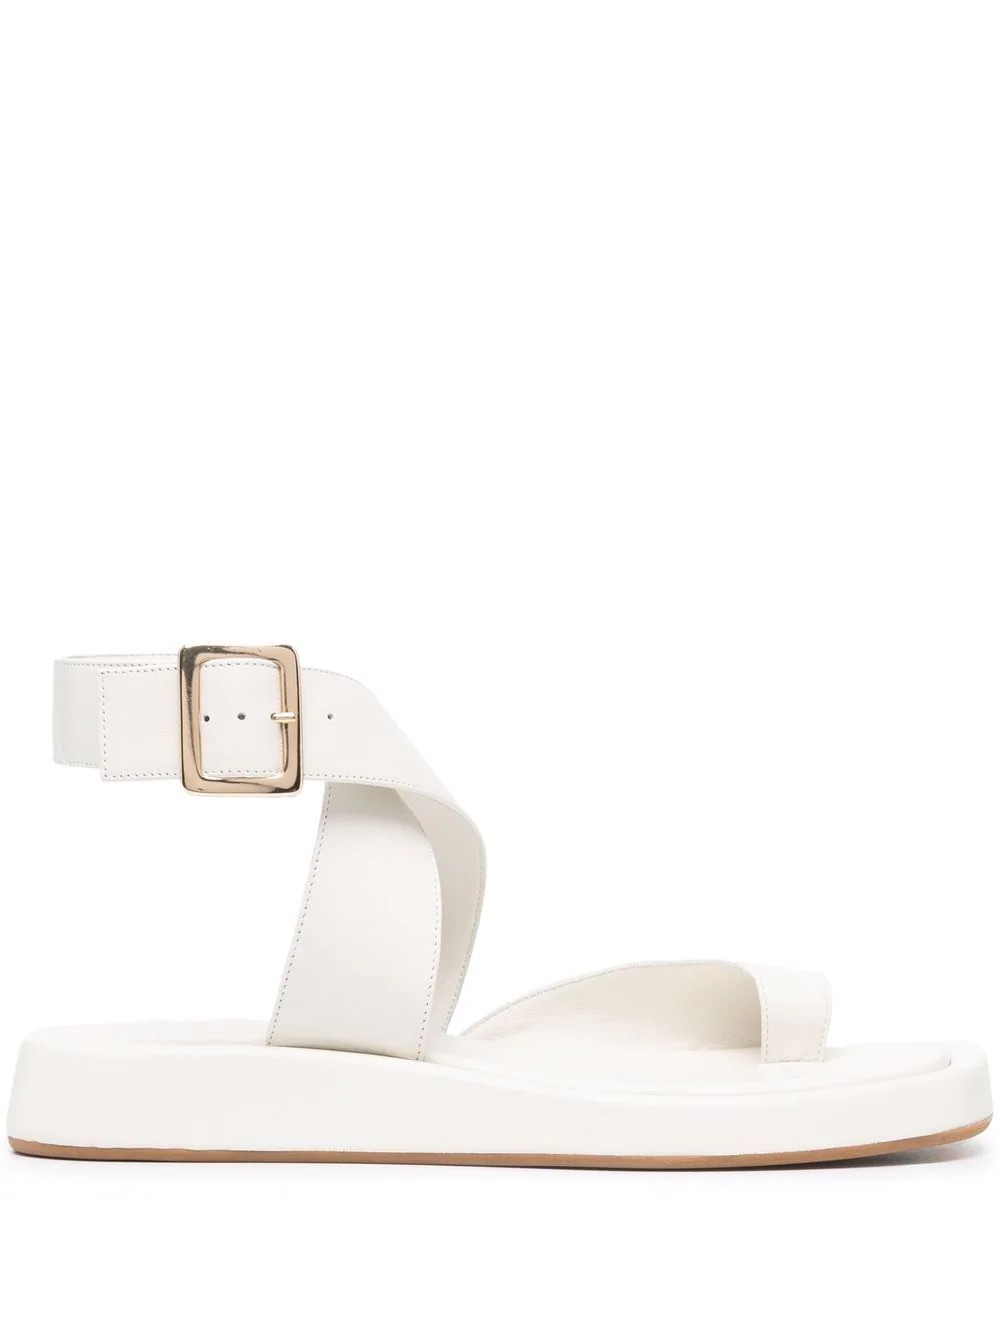 Rosie 4 Flat Toe Ring with strap around